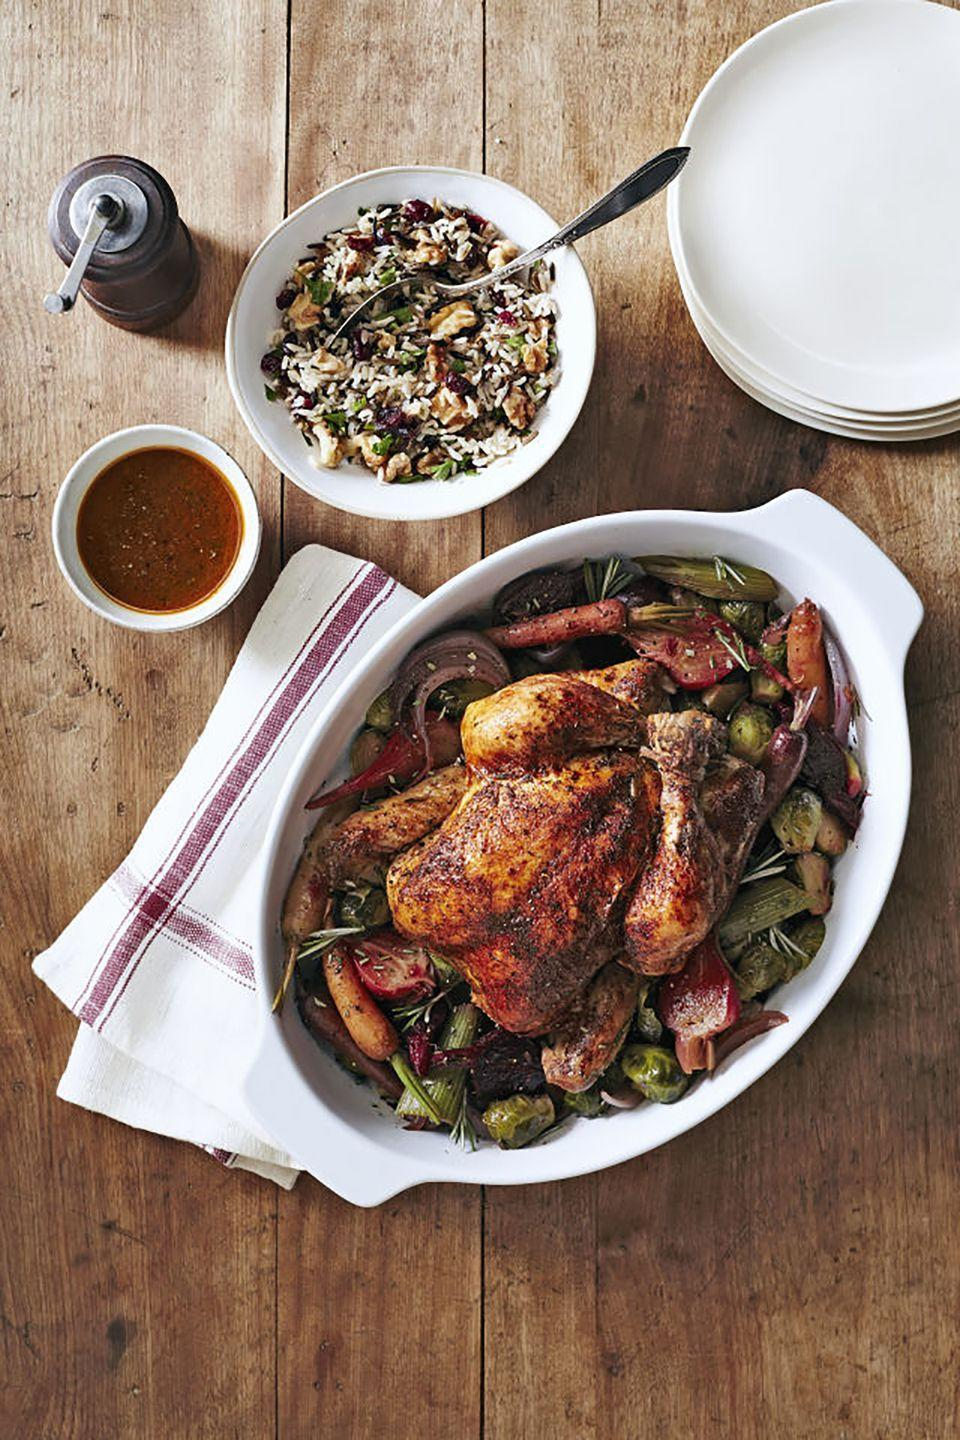 """<p>Technically a chicken recipe, this will also work with a smaller, 8-9 pound turkey. If you like crispy skin, you can just broil it for 10-15 minutes in the oven right at the end.</p><p><strong><a href=""""https://www.countryliving.com/food-drinks/recipes/a5689/herbed-chicken-beets-brussels-recipe-clx1014/"""" rel=""""nofollow noopener"""" target=""""_blank"""" data-ylk=""""slk:Get the recipe"""" class=""""link rapid-noclick-resp"""">Get the recipe</a>.</strong> </p>"""